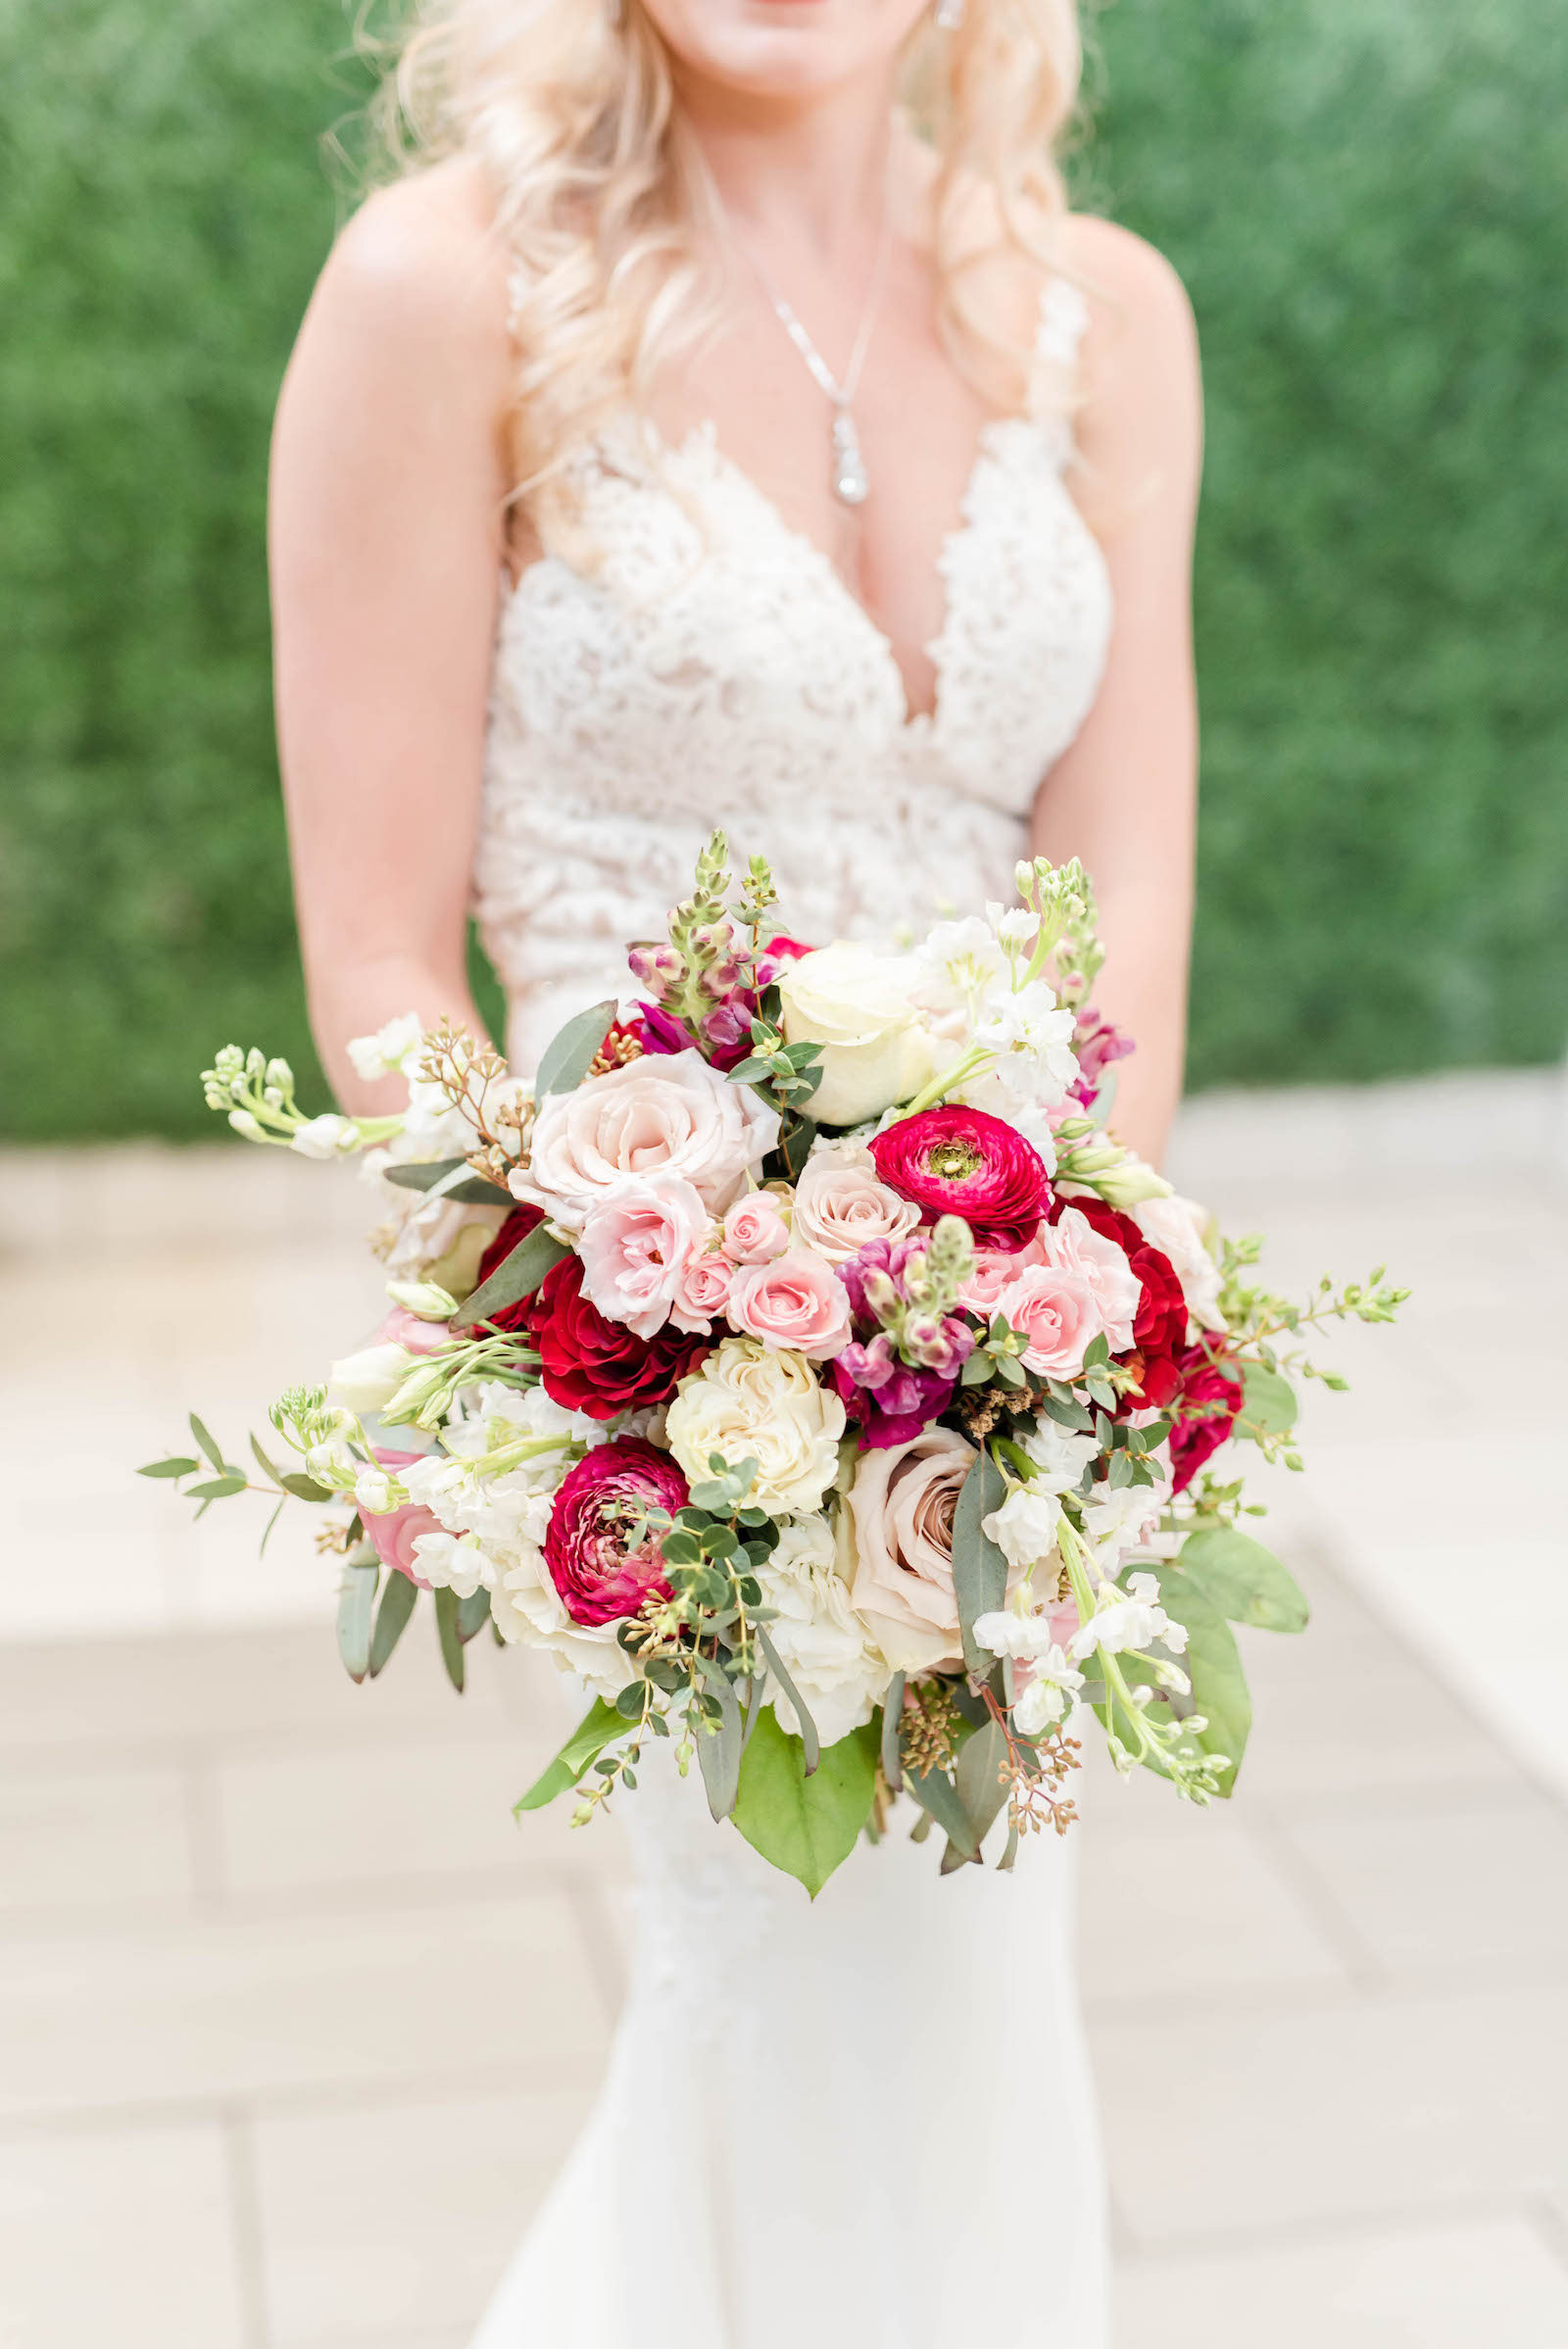 Bridal Portrait Bouquet Shot   Stella York Lace Sheath Spaghetti Strap Empire Waist Wedding Dress Bridal Gown   Bride Wedding Bouquet with Blush Pink Dusty and Burgundy Rose Garden Roses, Snapdragons, Stock, and Eucalyptus Greenery